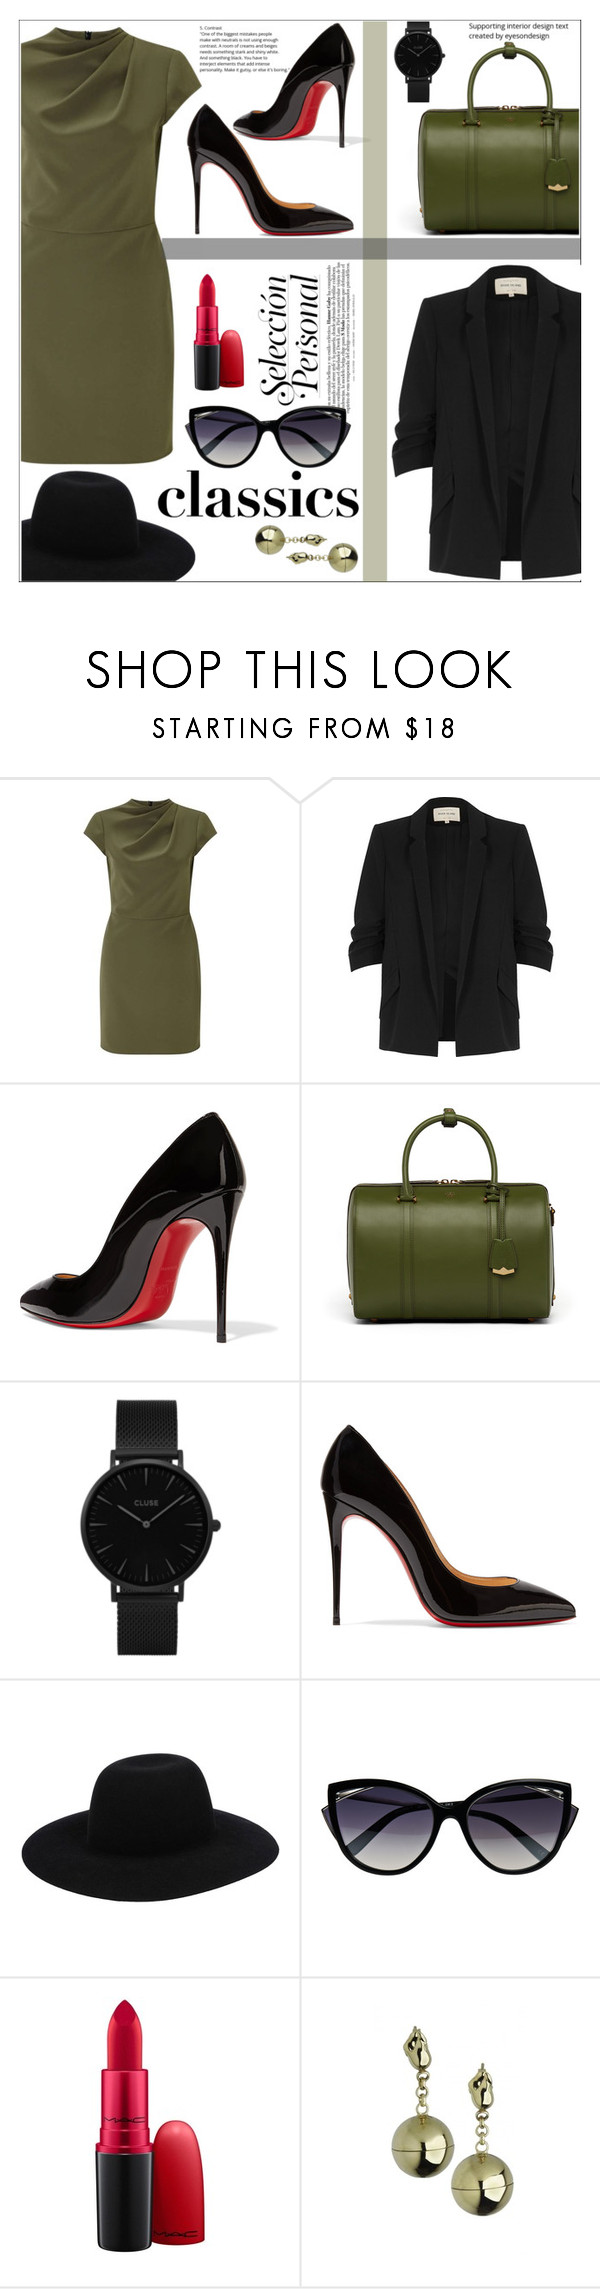 """Classics"" by dani-elan ❤ liked on Polyvore featuring Miss Selfridge, River Island, Christian Louboutin, MCM, CLUSE, Off-White, La Perla, MAC Cosmetics, Caterina Zangrando and Elegant"